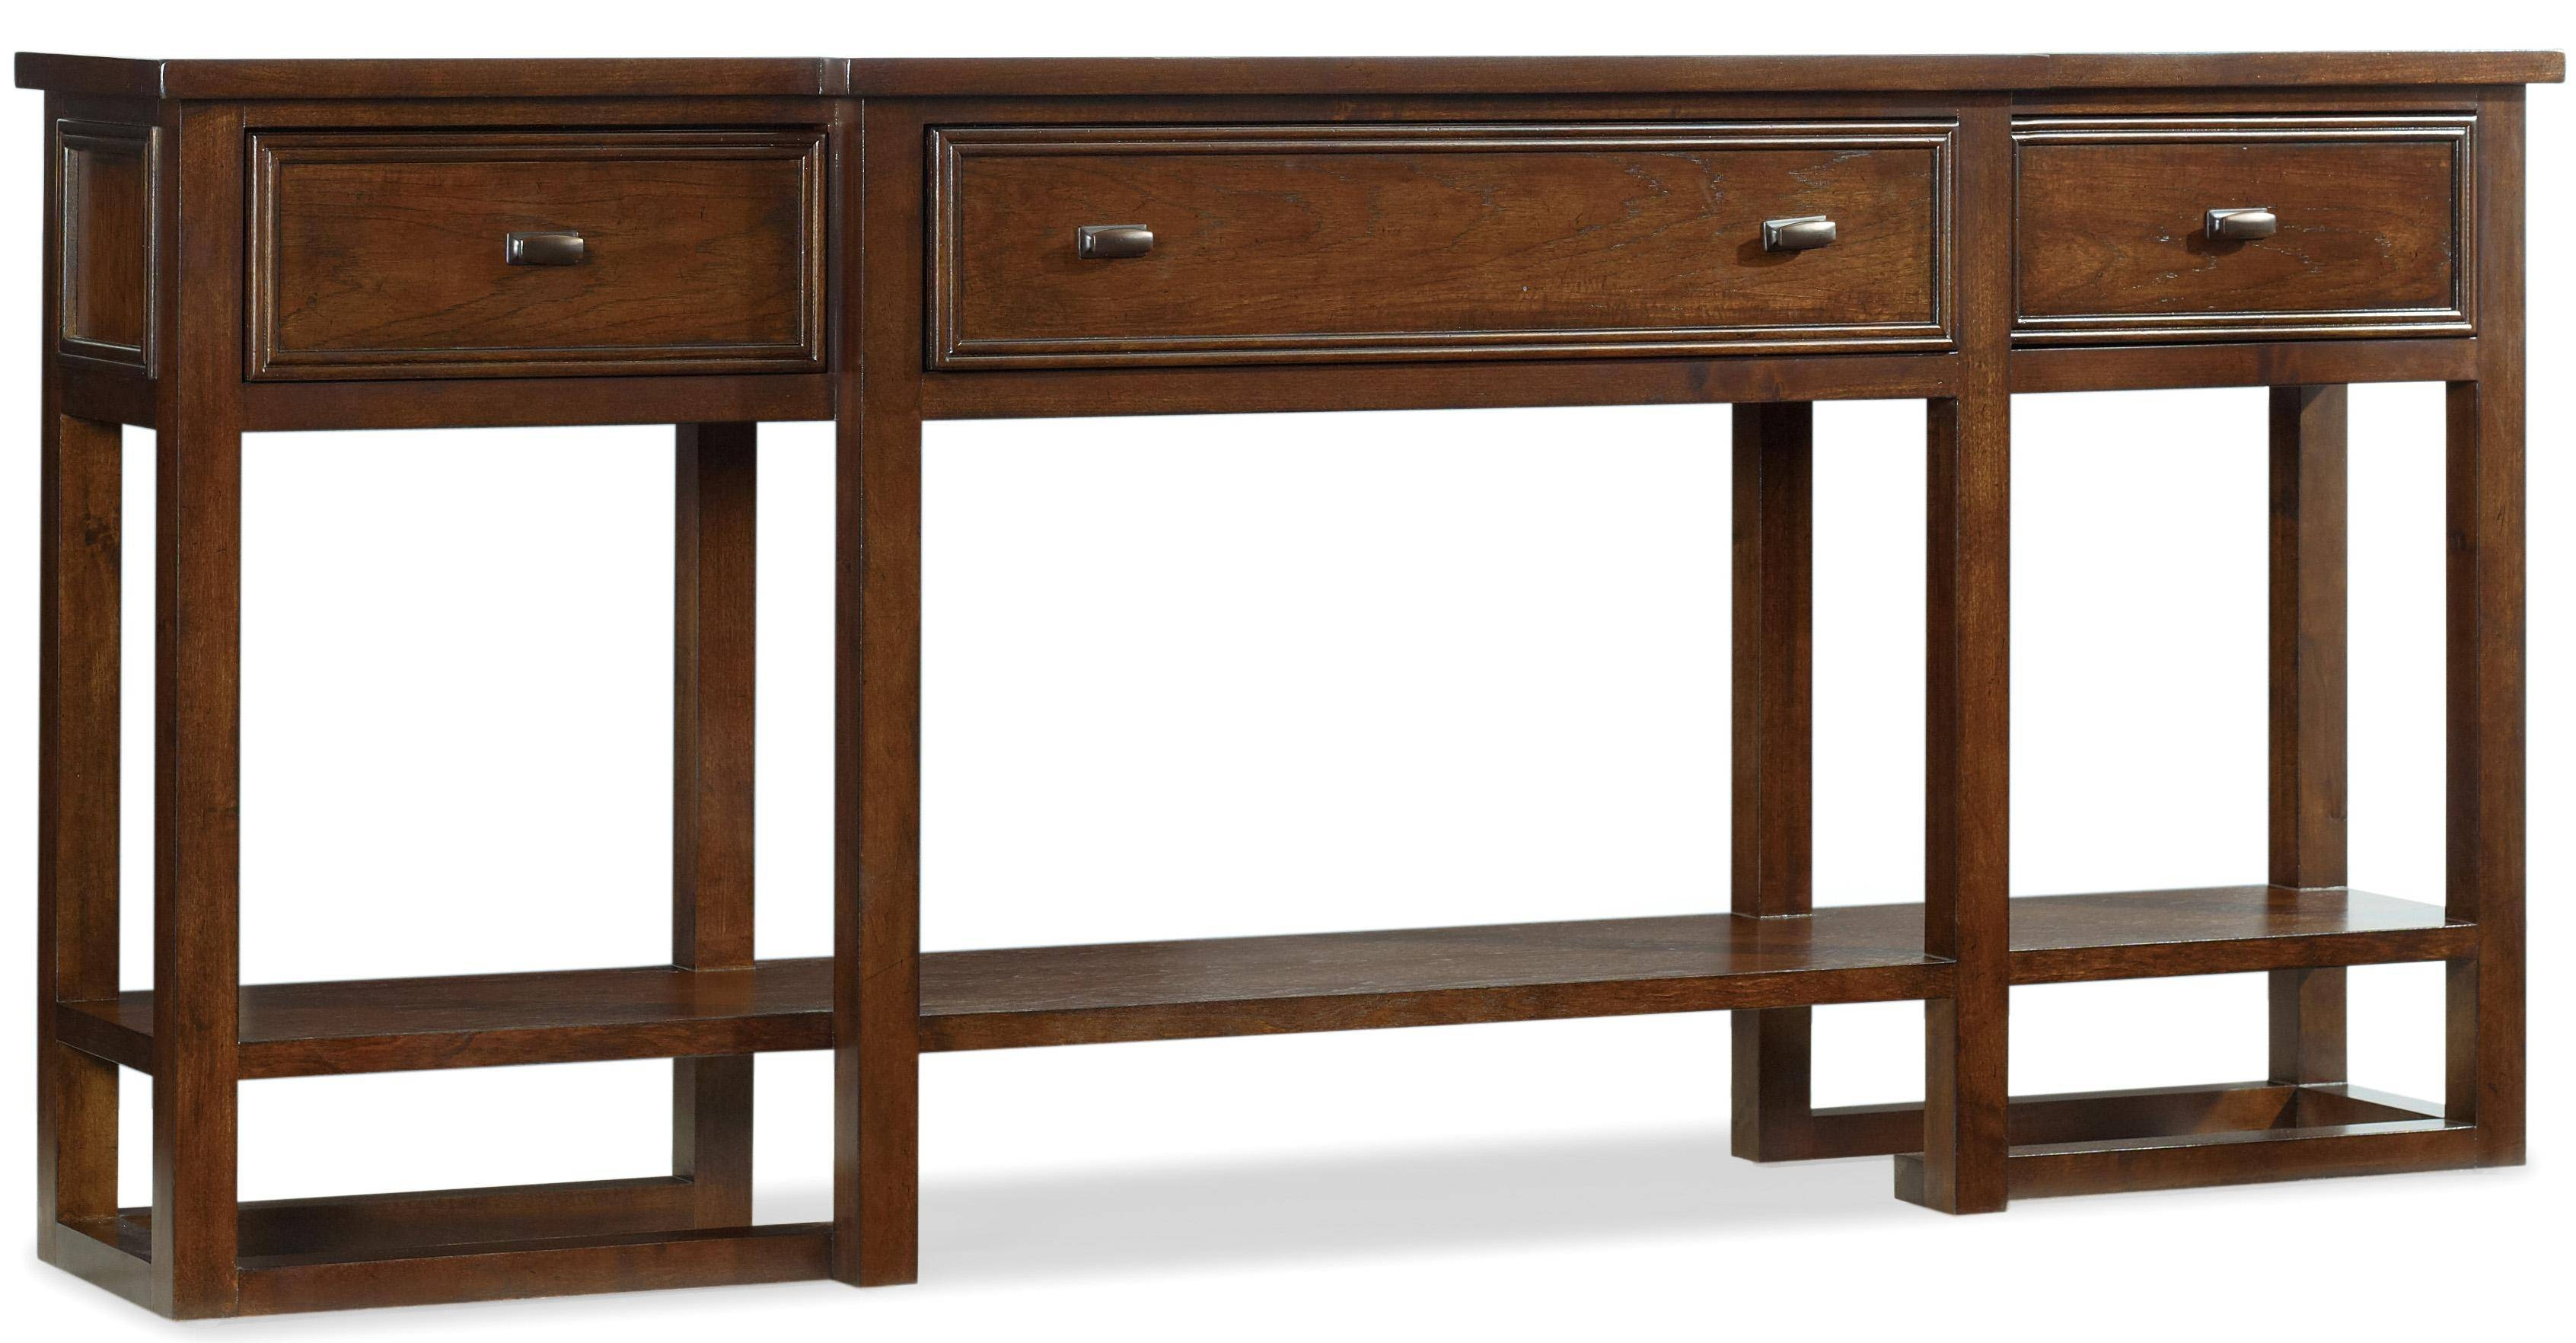 Hooker Furniture Lorimer 72-Inch Sofa Table With Breakfront, 3 intended for Sofa Table Drawers (Image 12 of 30)